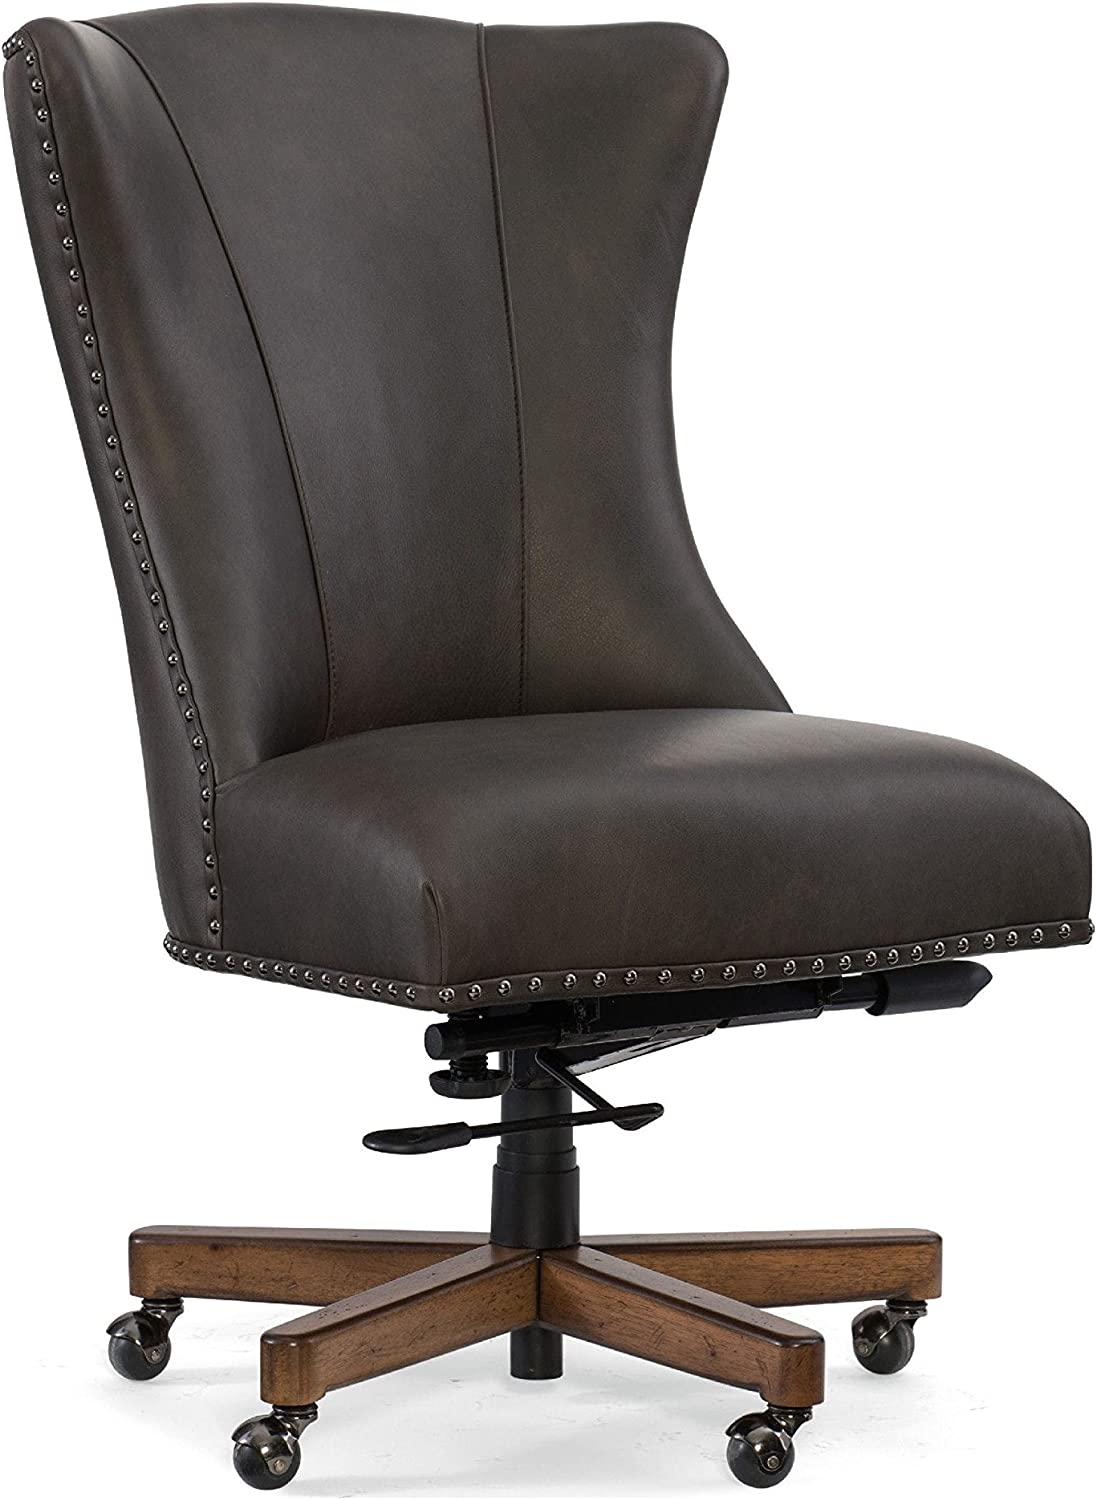 Shop Queen Anne Desk Chair Set Free Shipping Today >> Hooker Furniture Lynn Leather Home Office Chair In Gray